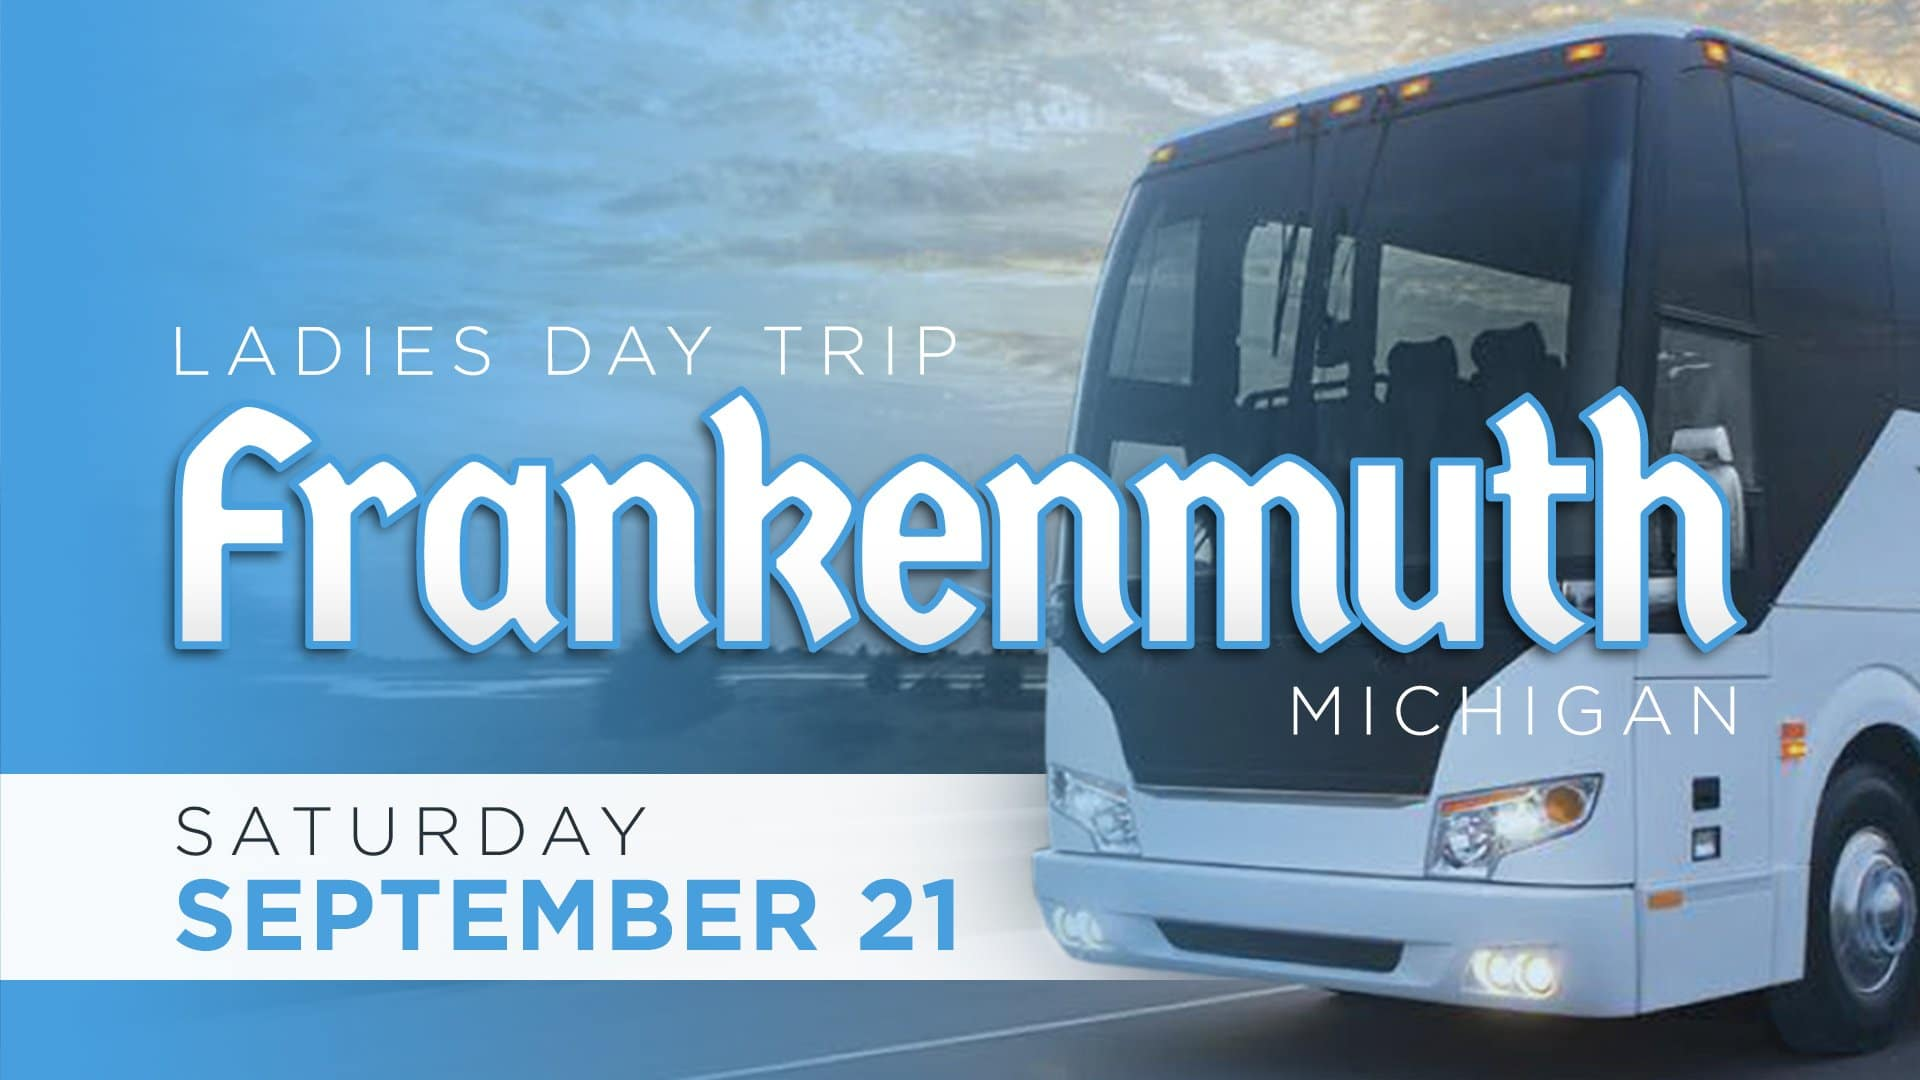 Ladies Day Trip to Frankenmuth Michigan on Saturday September 21 with a large coach bus.